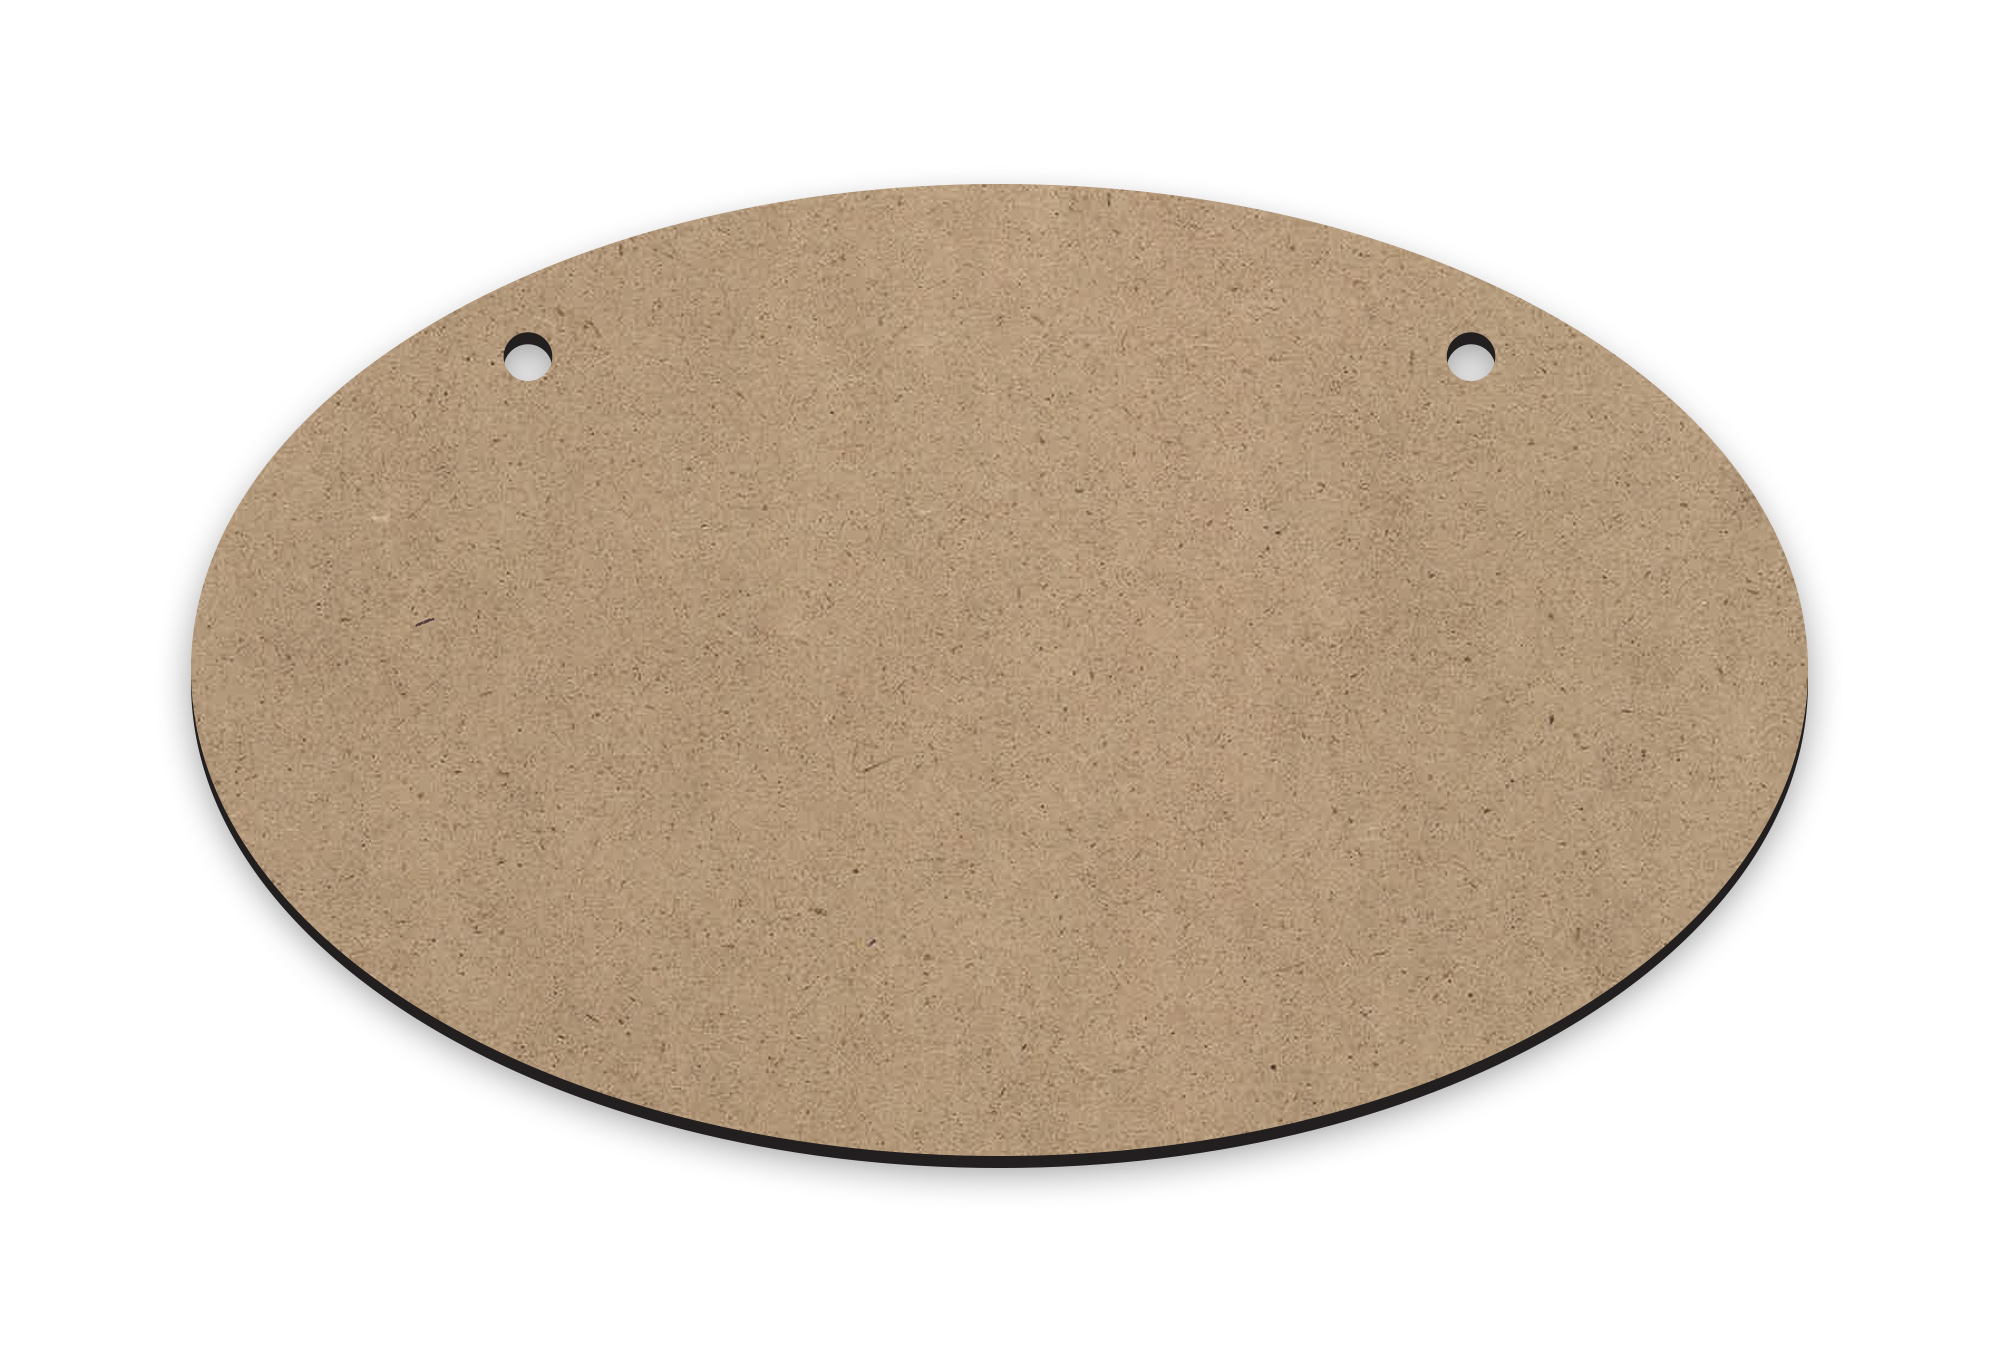 "Horizontal Oval | Ornament Wood Mini Surface #17 | Size 5"" x 3"""